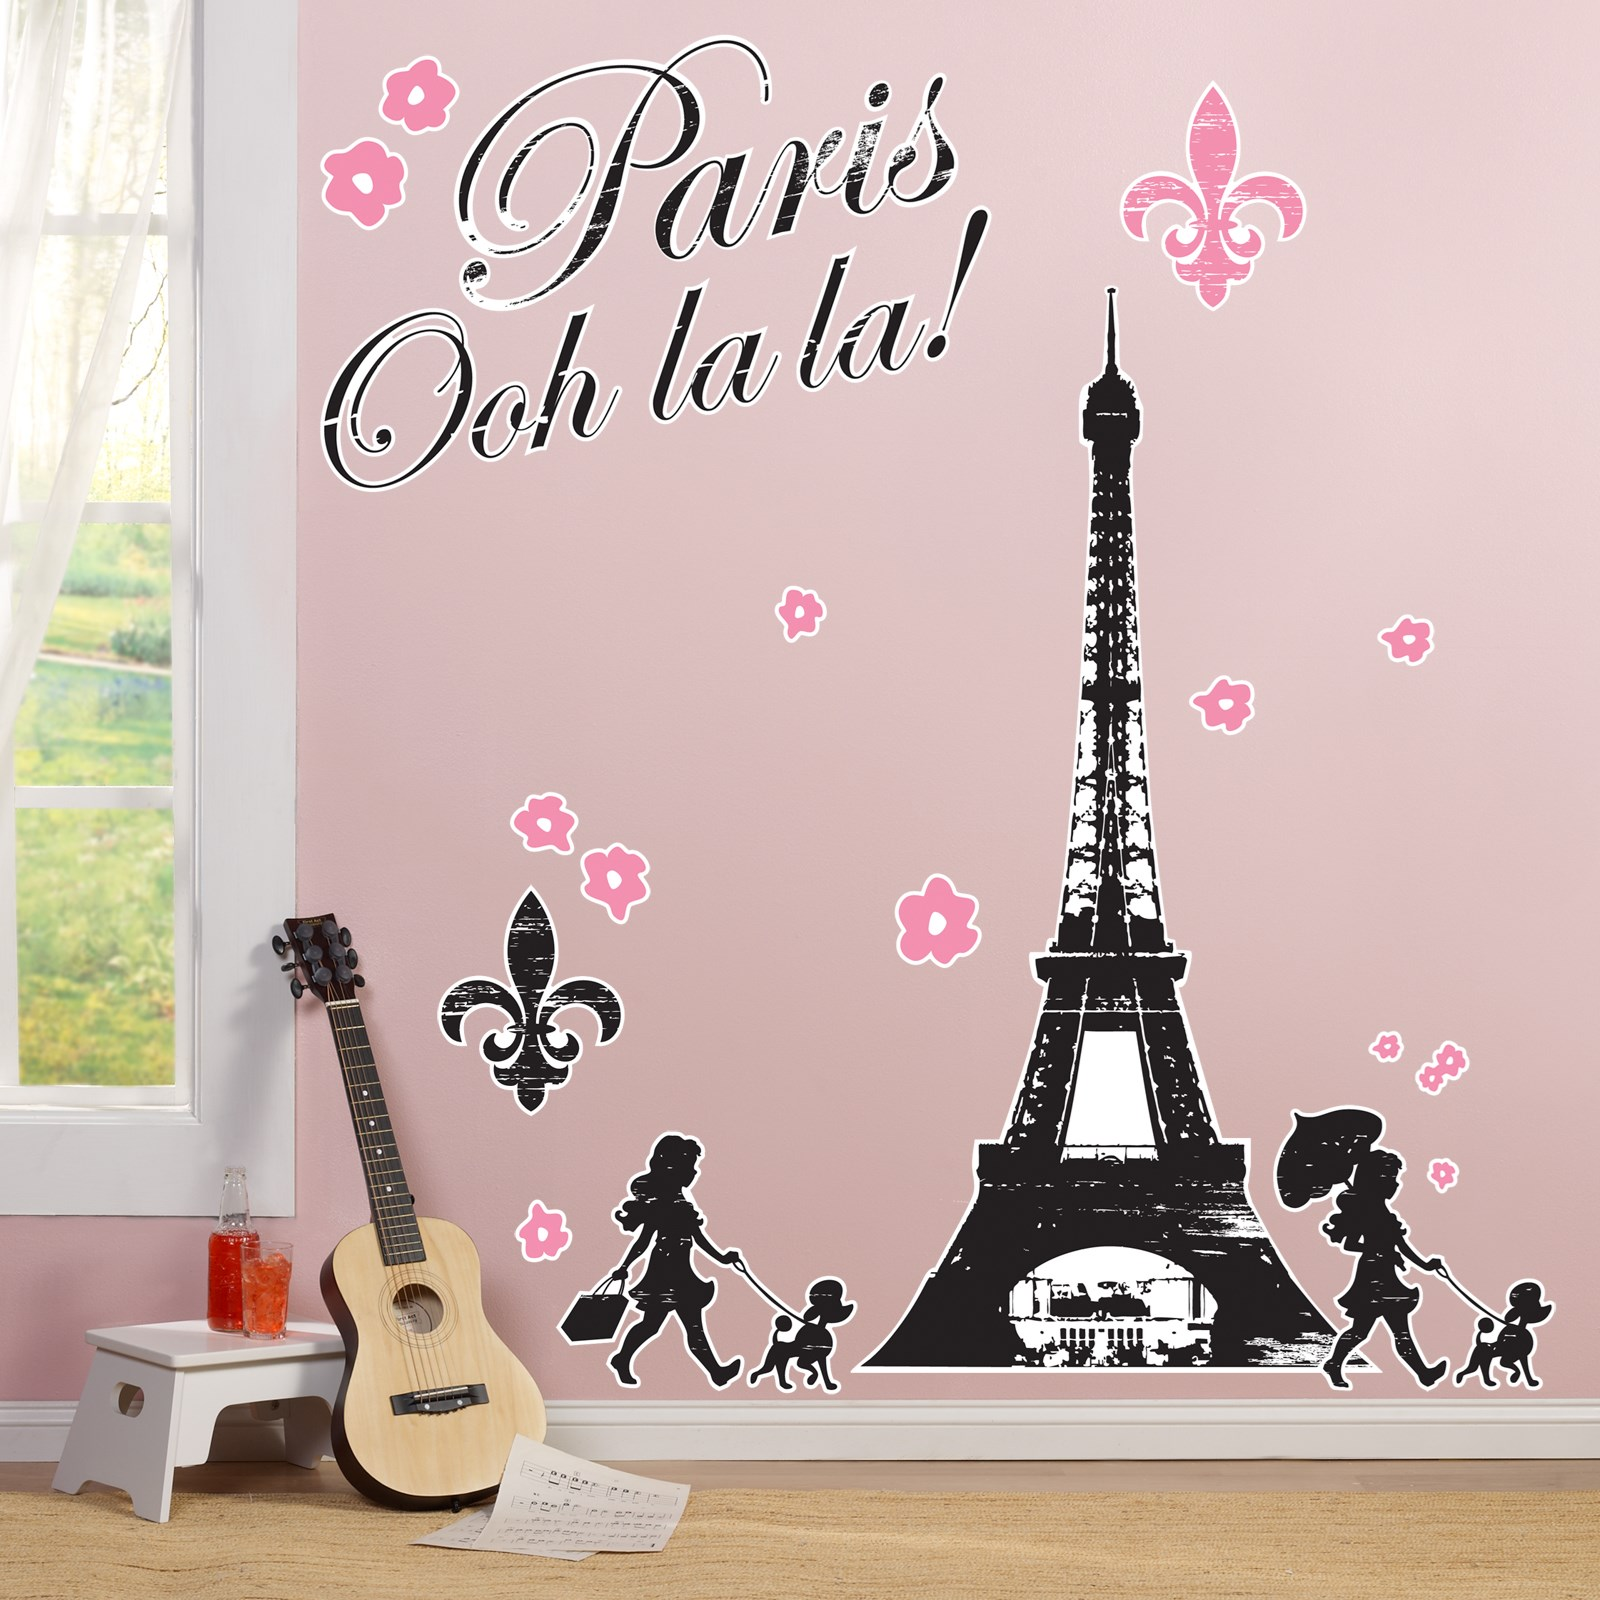 paris damask giant wall decals  birthdayexpresscom - default image  paris damask giant wall decals